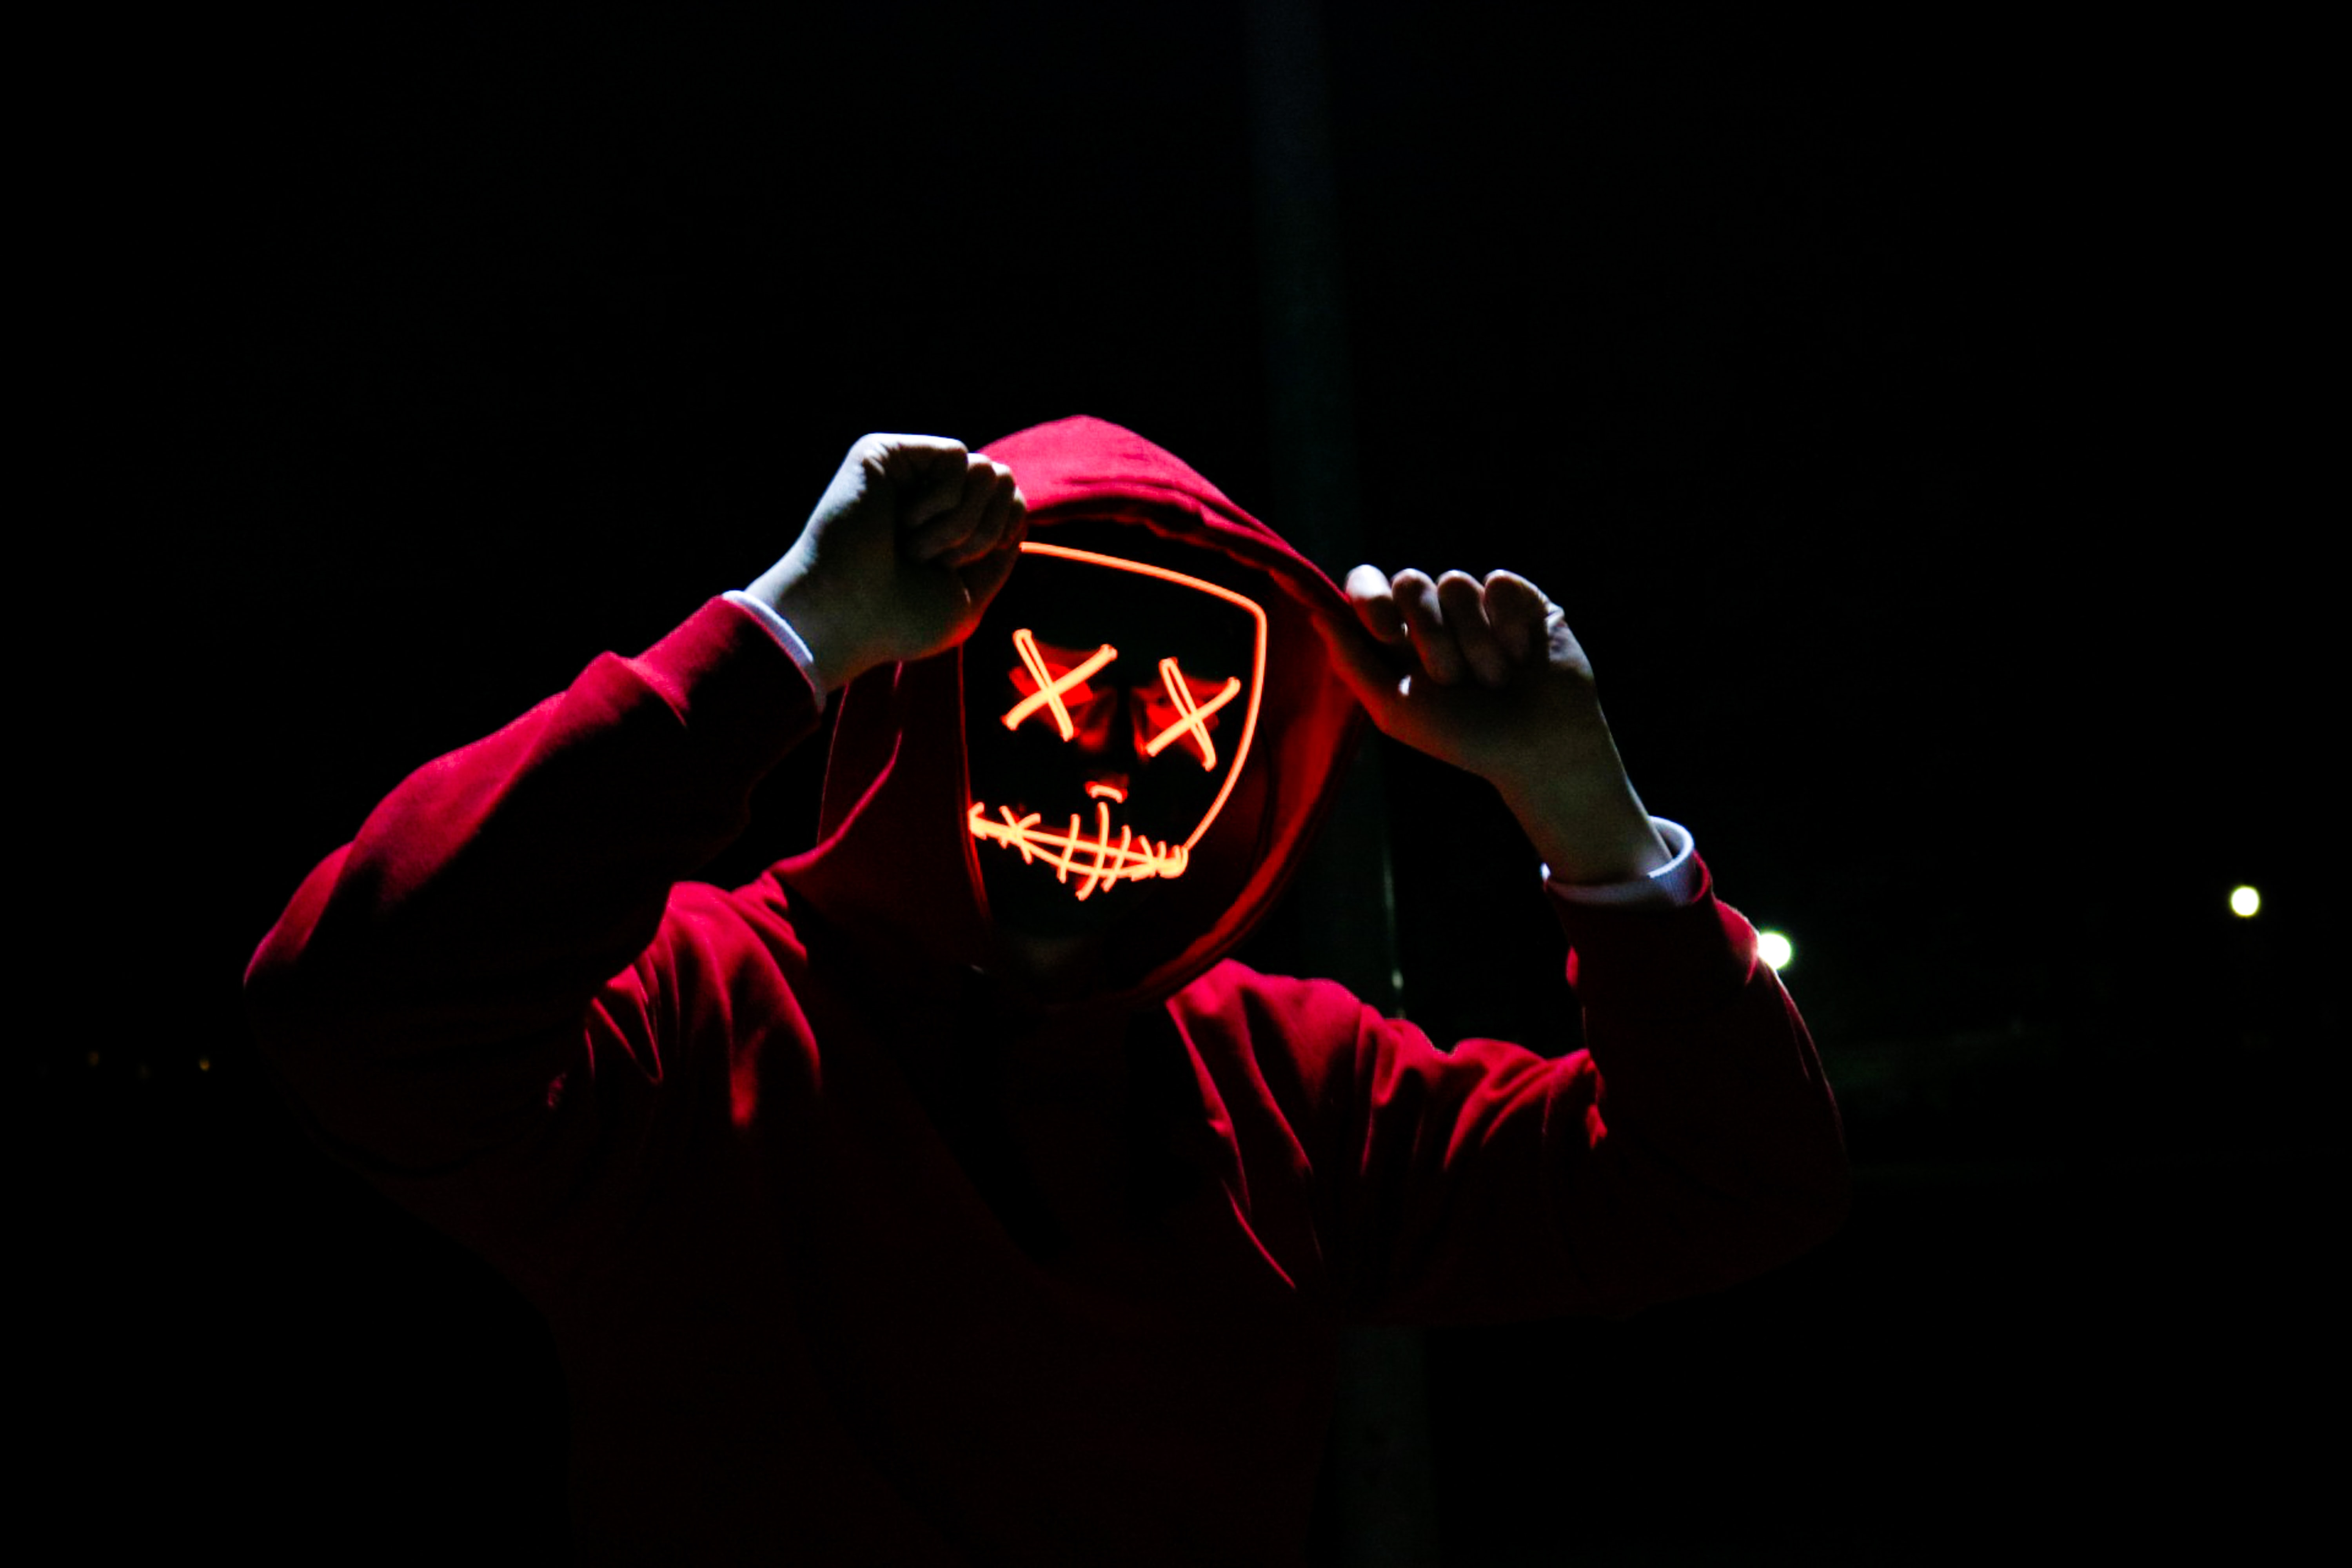 man wearing red hoodie